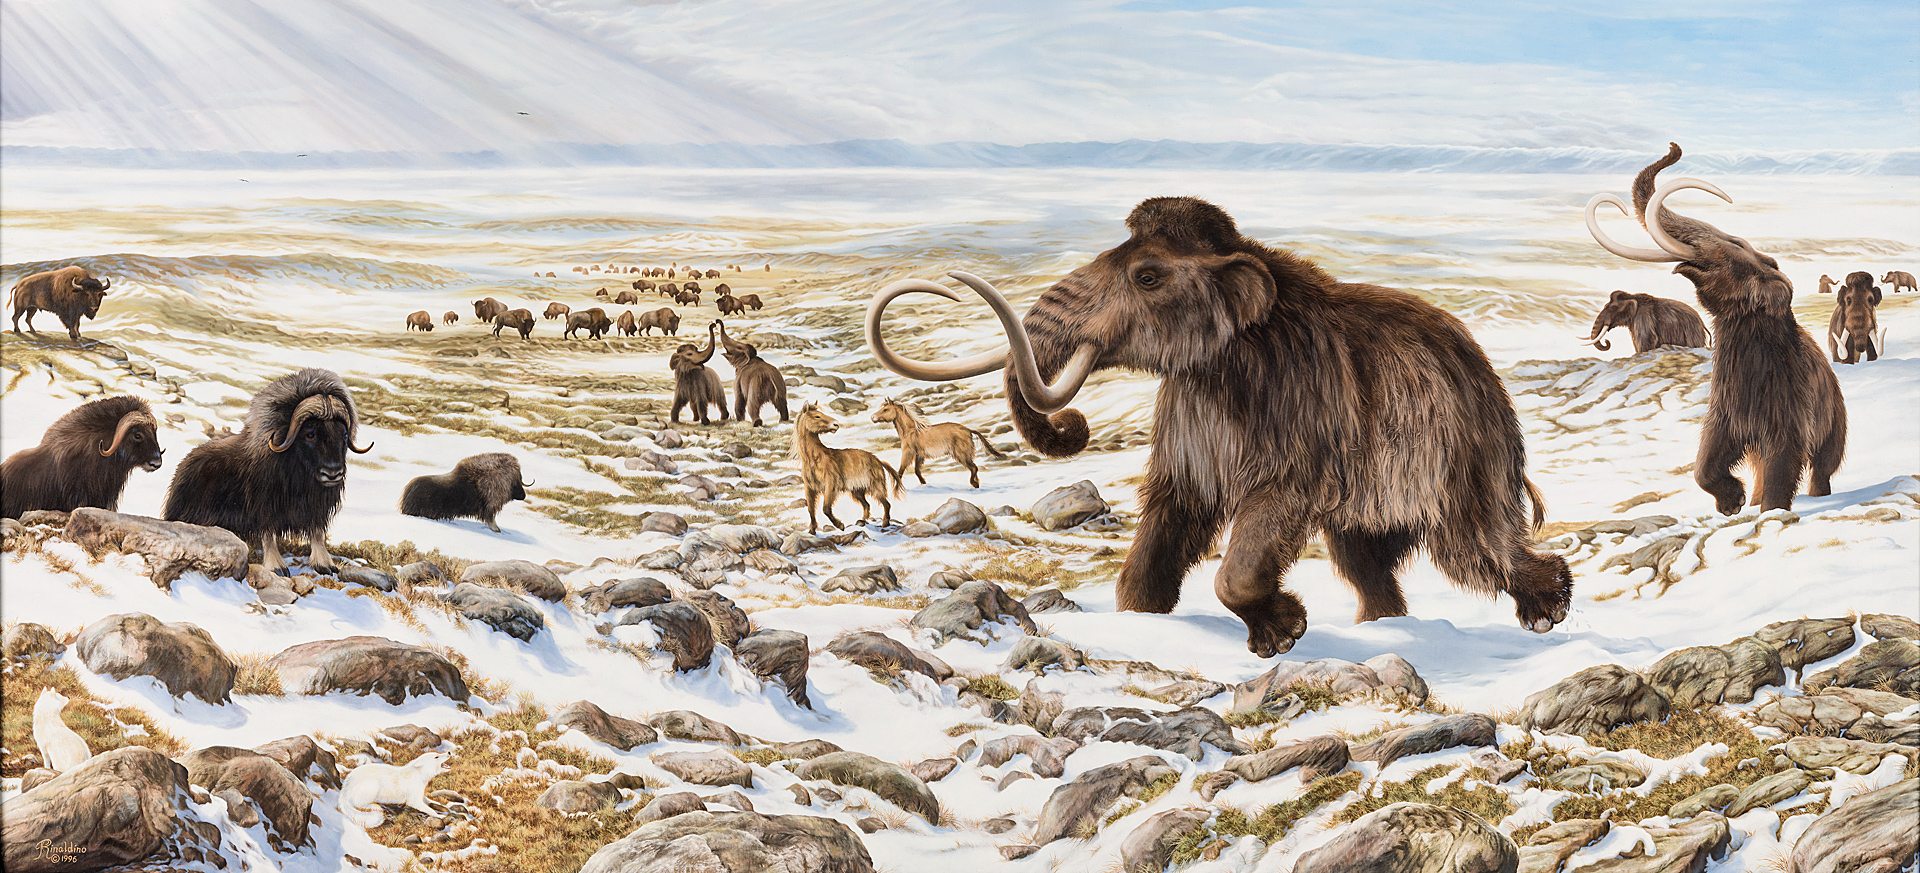 It's just an image of Agile Ice Ages Pictures